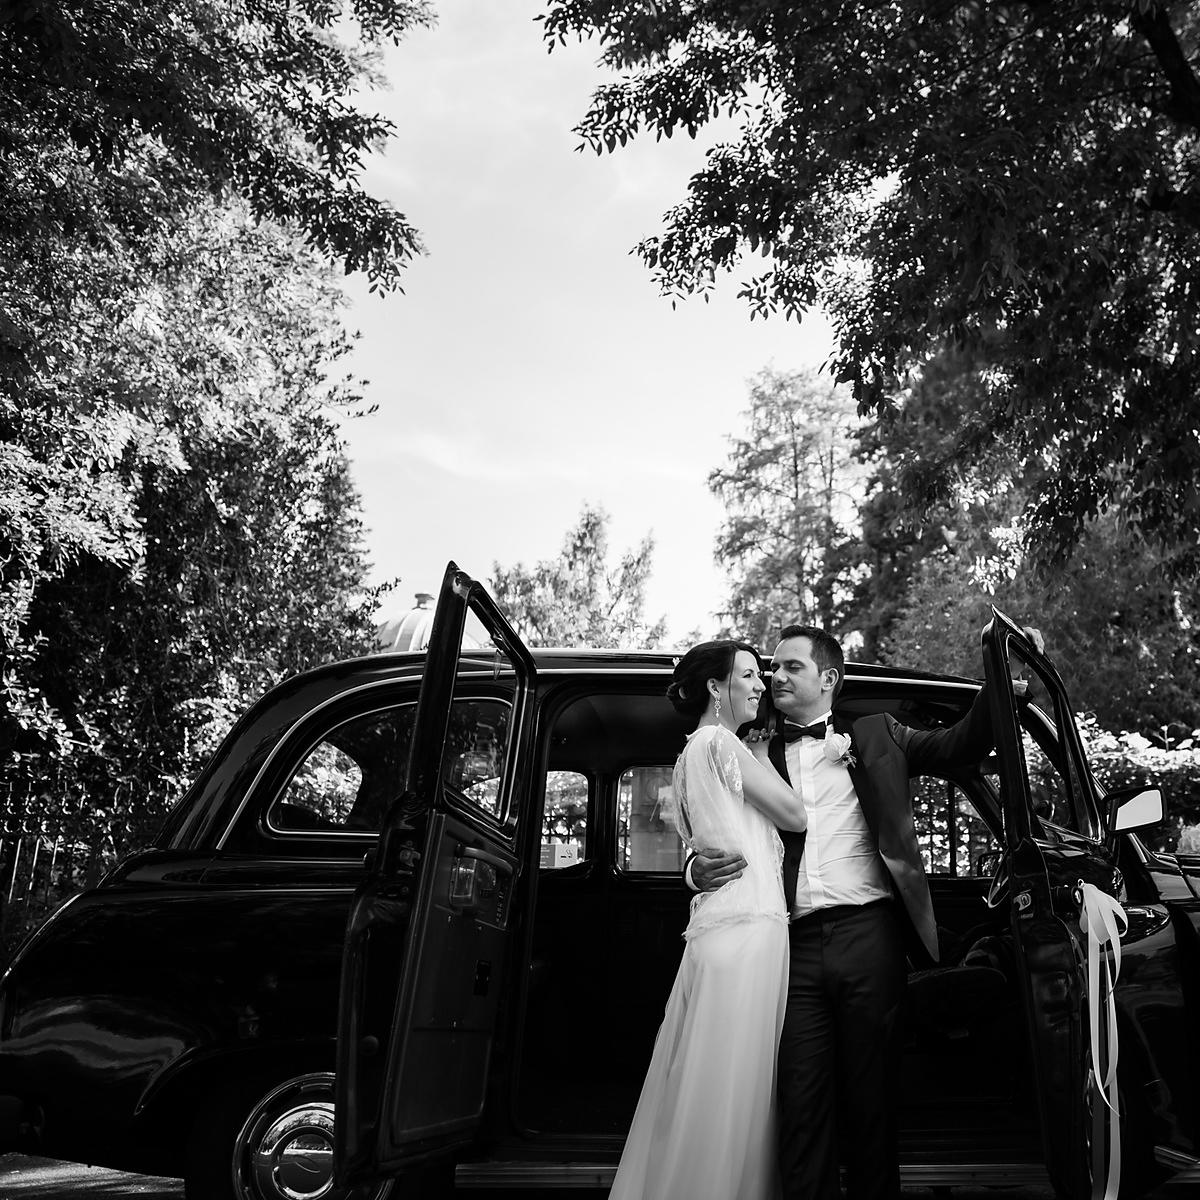 photographe_mariage_strasbourg_alsace_051